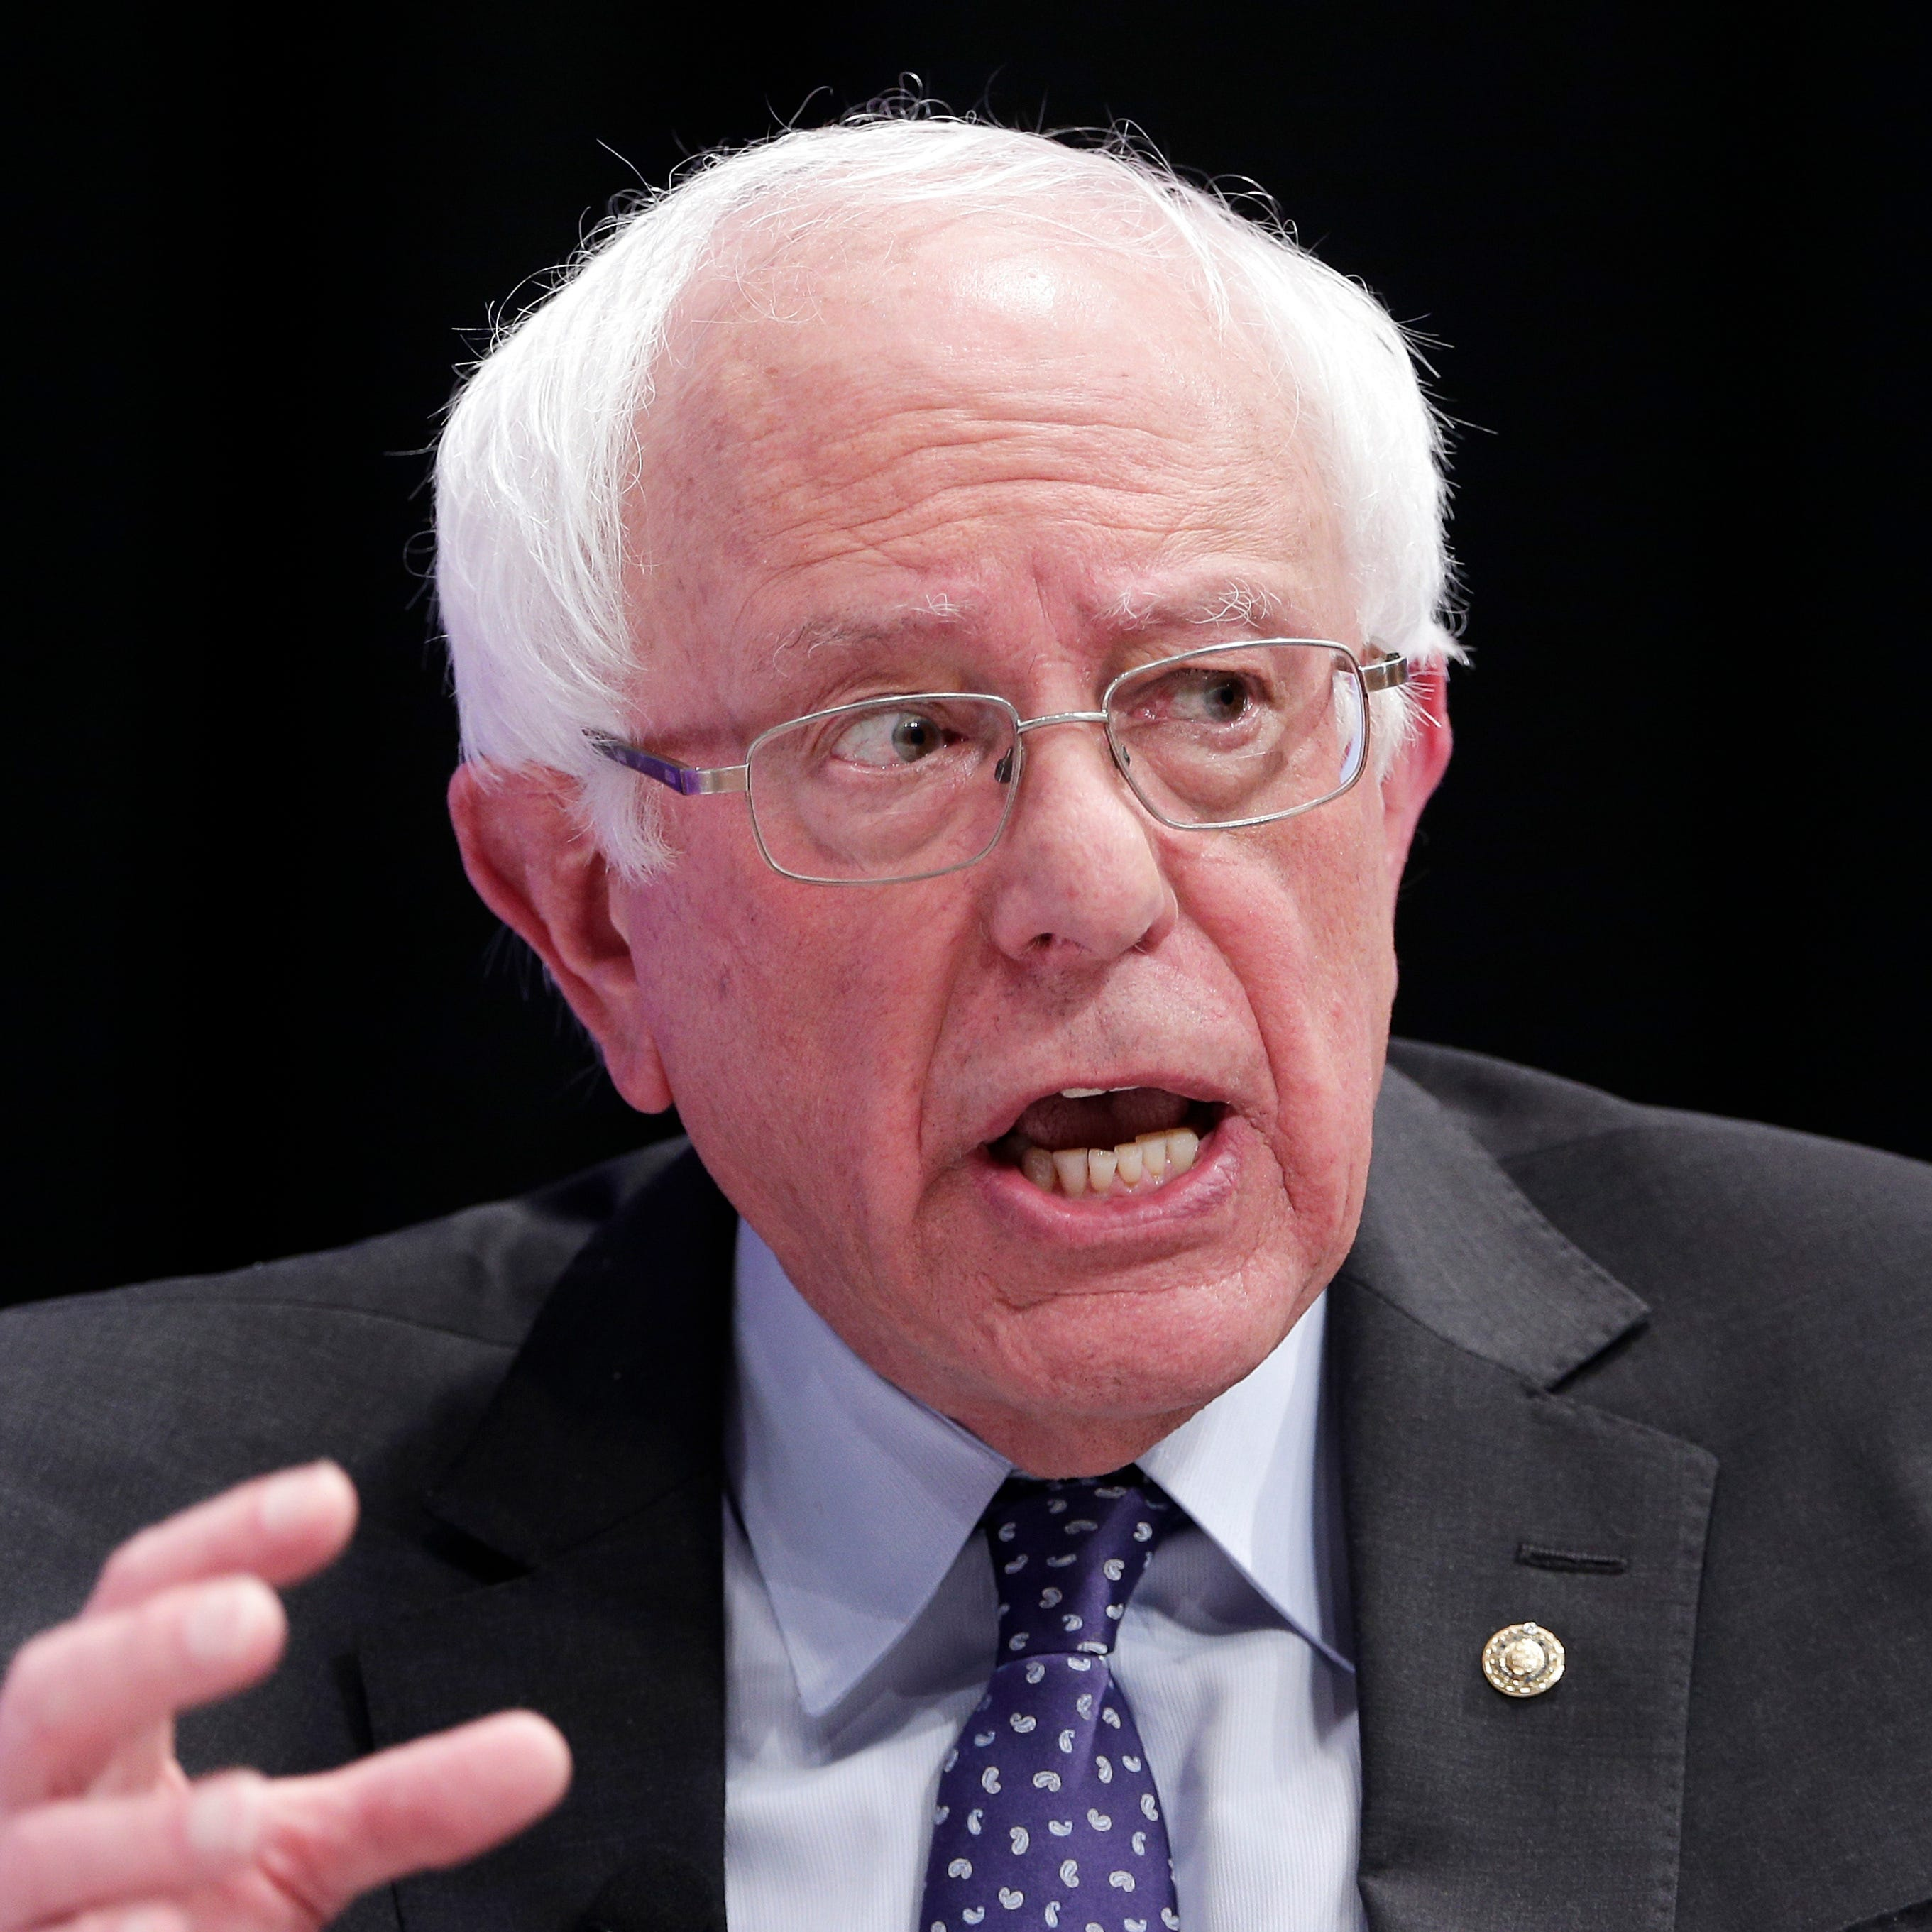 Bernie Sanders zeros in on Joe Biden as his favorite foil